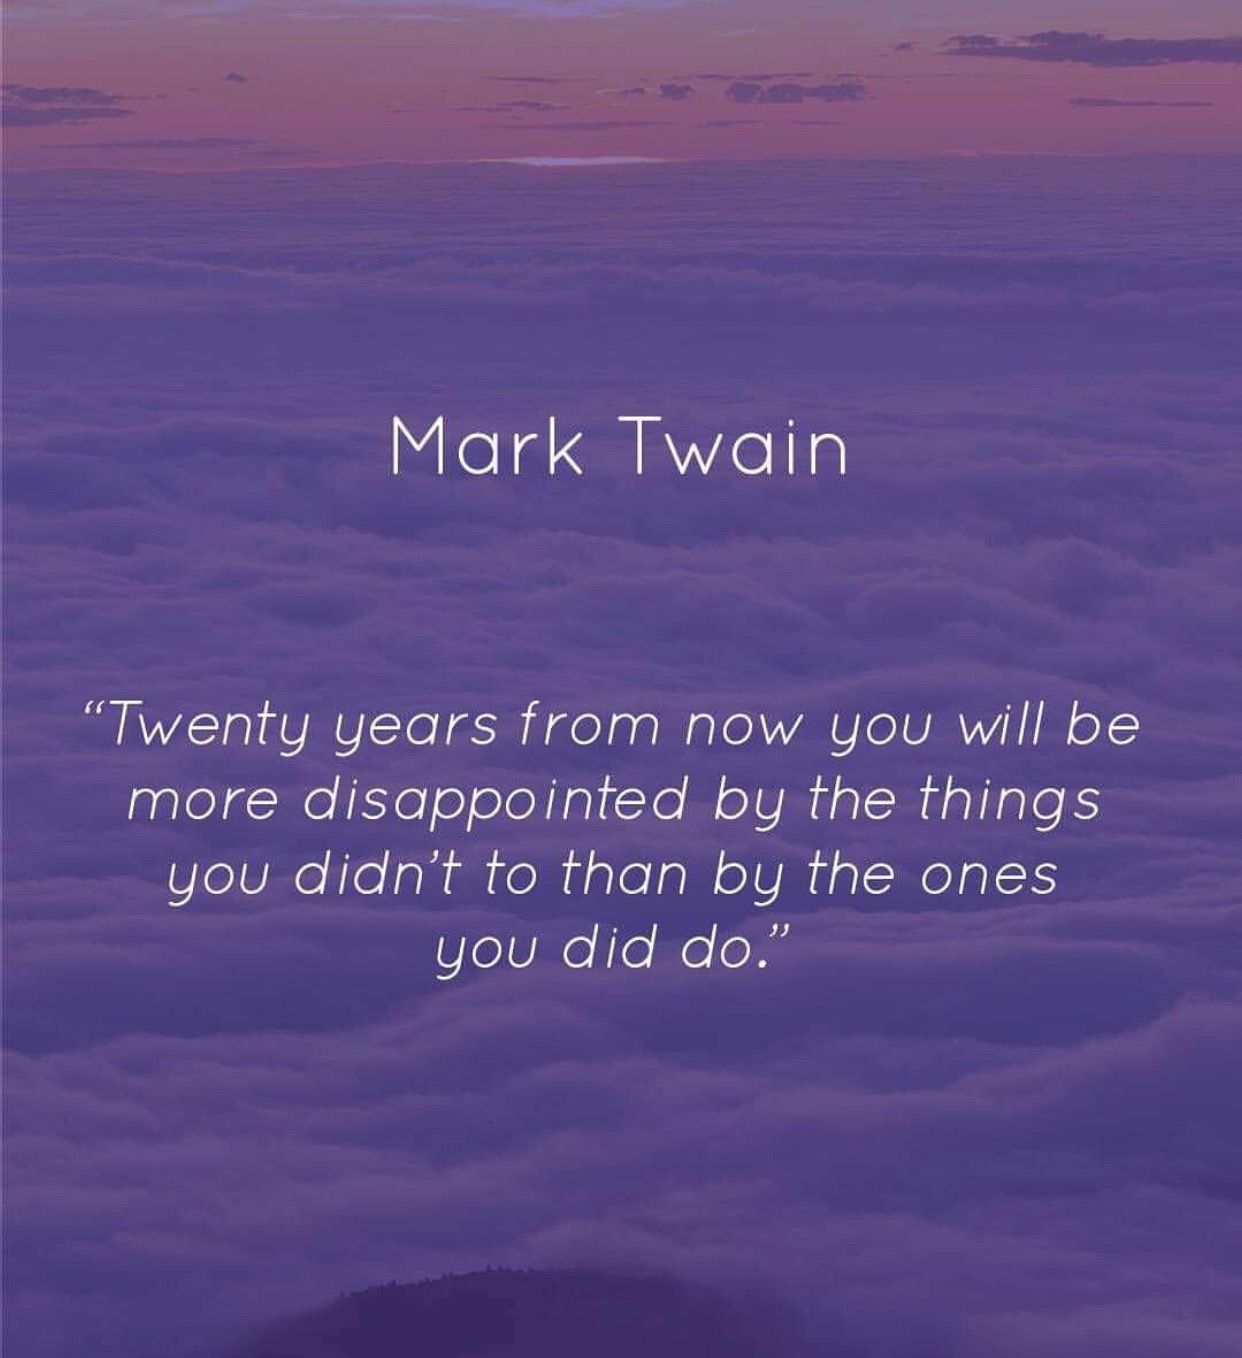 Live Life With No Regrets You Only Live Once Make It Count Mark Twain Quote Feel Good Quotes Inspirational Quotes About Strength Regret Quotes